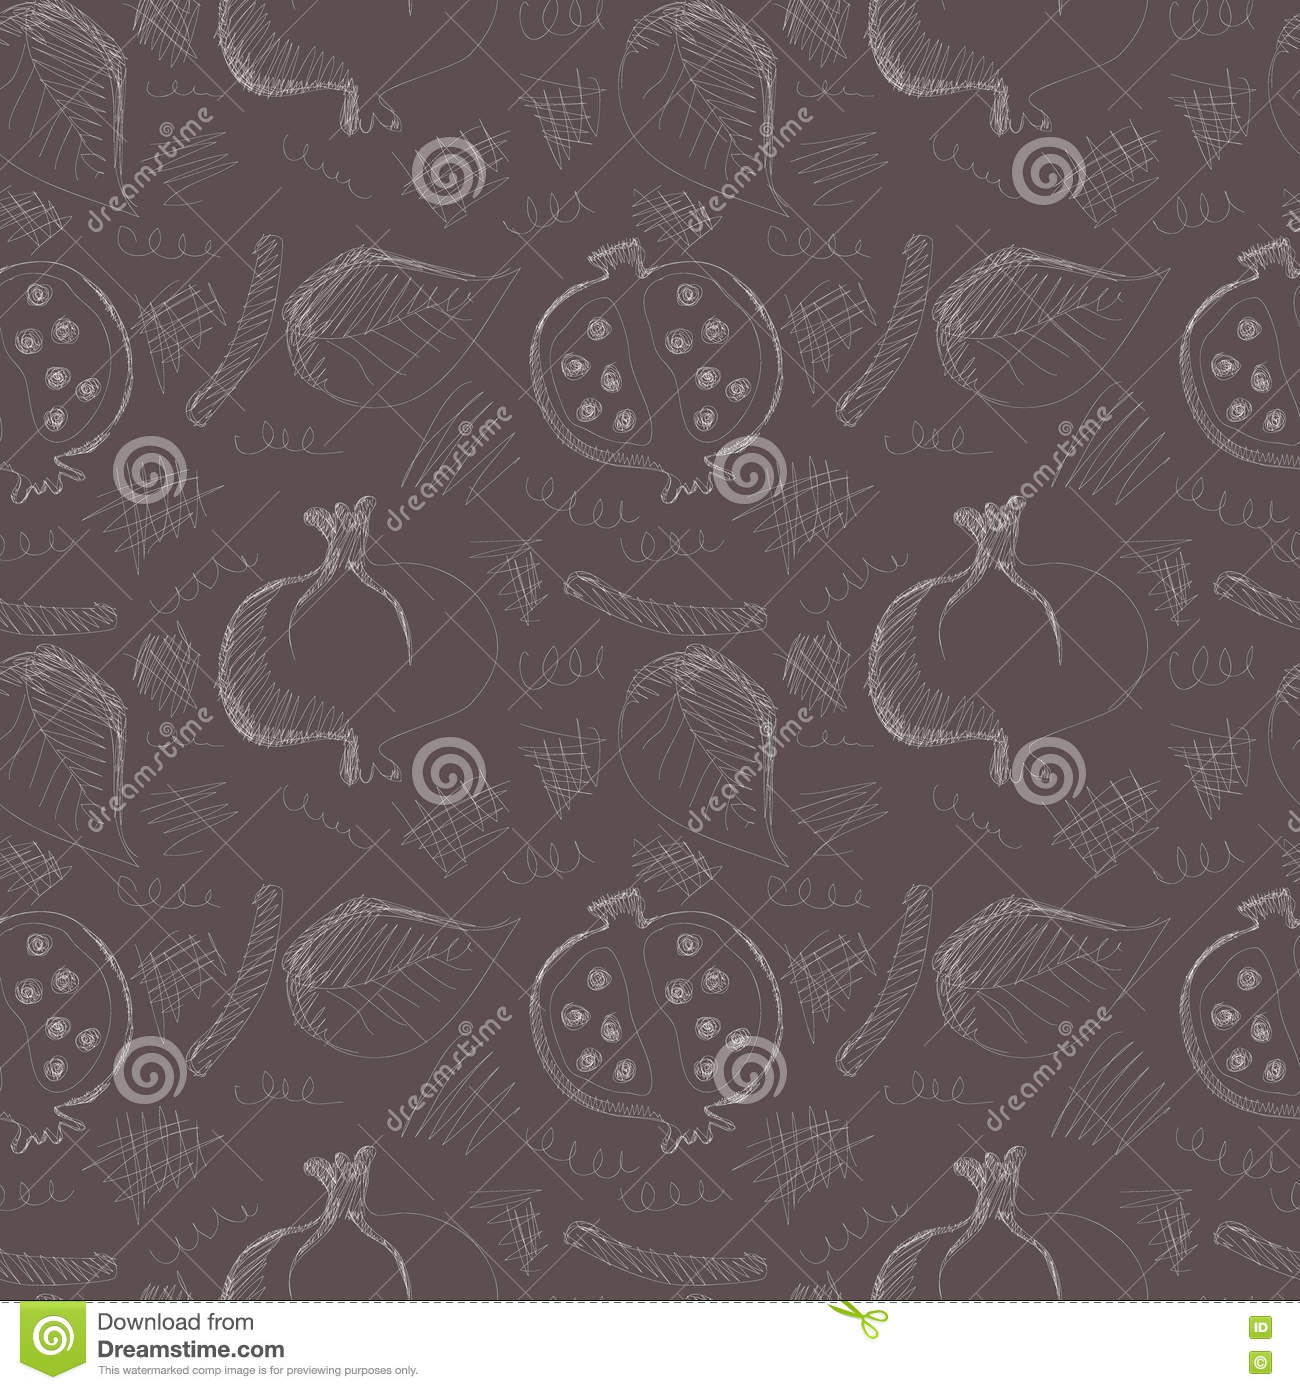 Seamless vector pattern with hand drawn pomegranates, leaves and scribbles on the dark grey background.